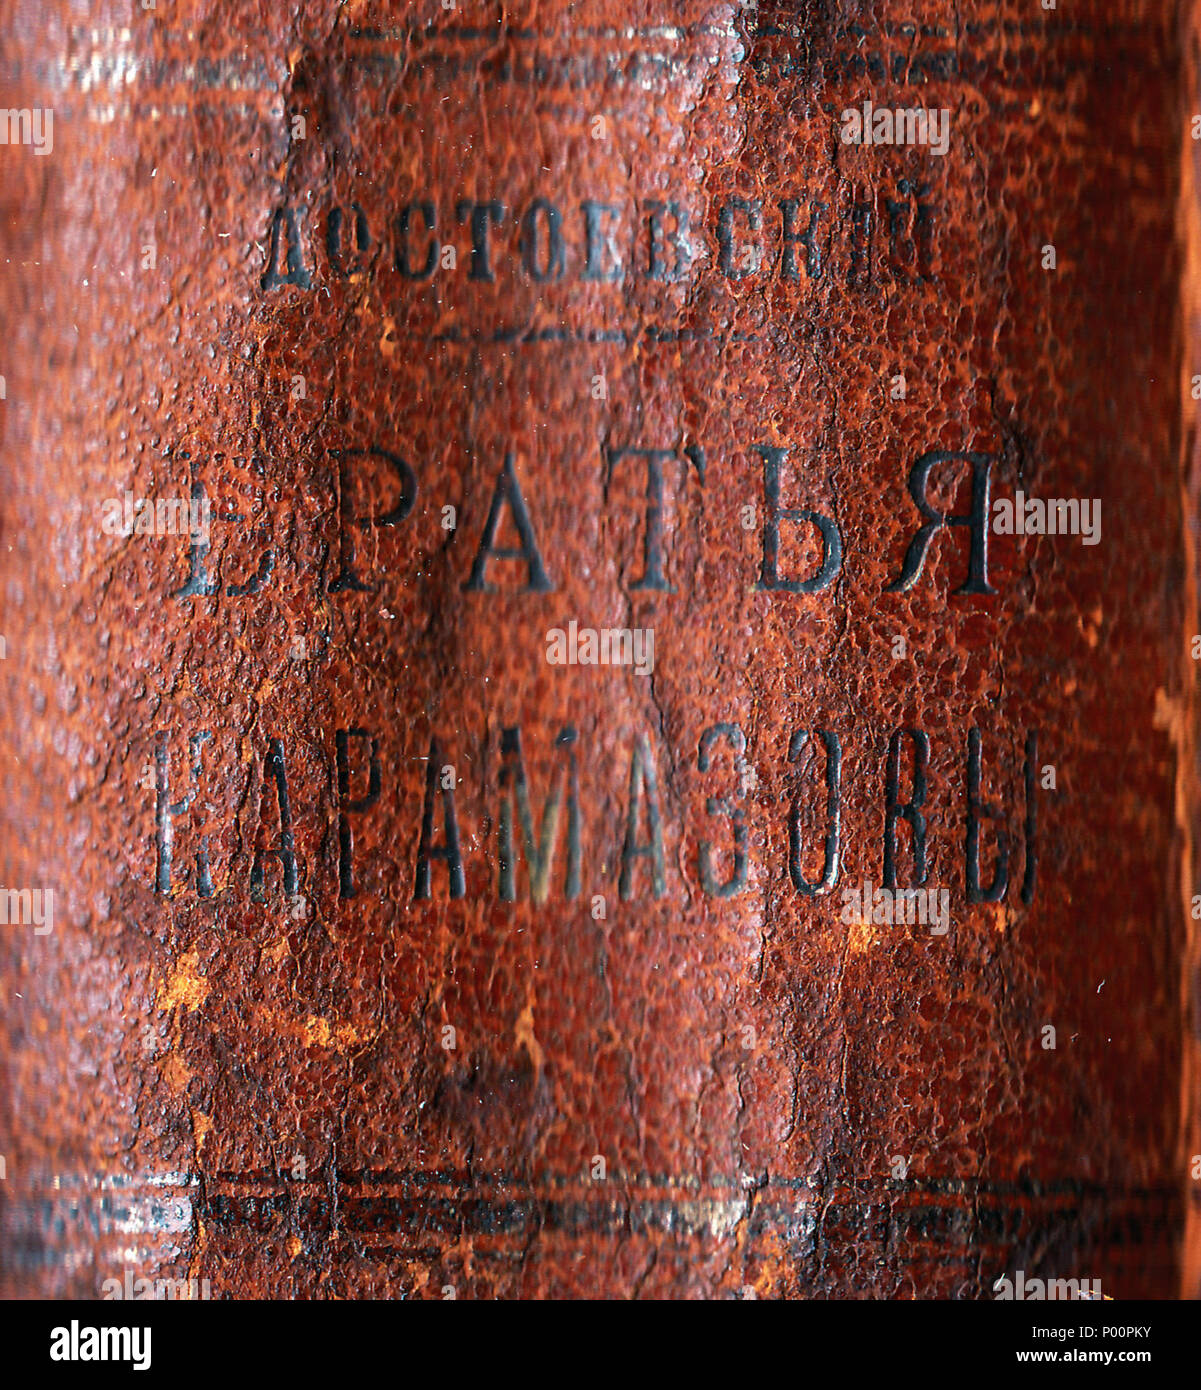 . English: Second volume (including Parts III–IV and Epilogue) of the first Russian edition of The Brothers Karamazov, published in Saint Petersburg in 1881 by Типография брат. Пантелеевыхъ, contemporary quarter leather bound with cloth-covered boards, 15×20 cm  . 1881. Photographs by Sigedon Ars Memoriae, text by Fyodor Dostoyevsky 98 The Brothers Karamazov first edition spine - Stock Image